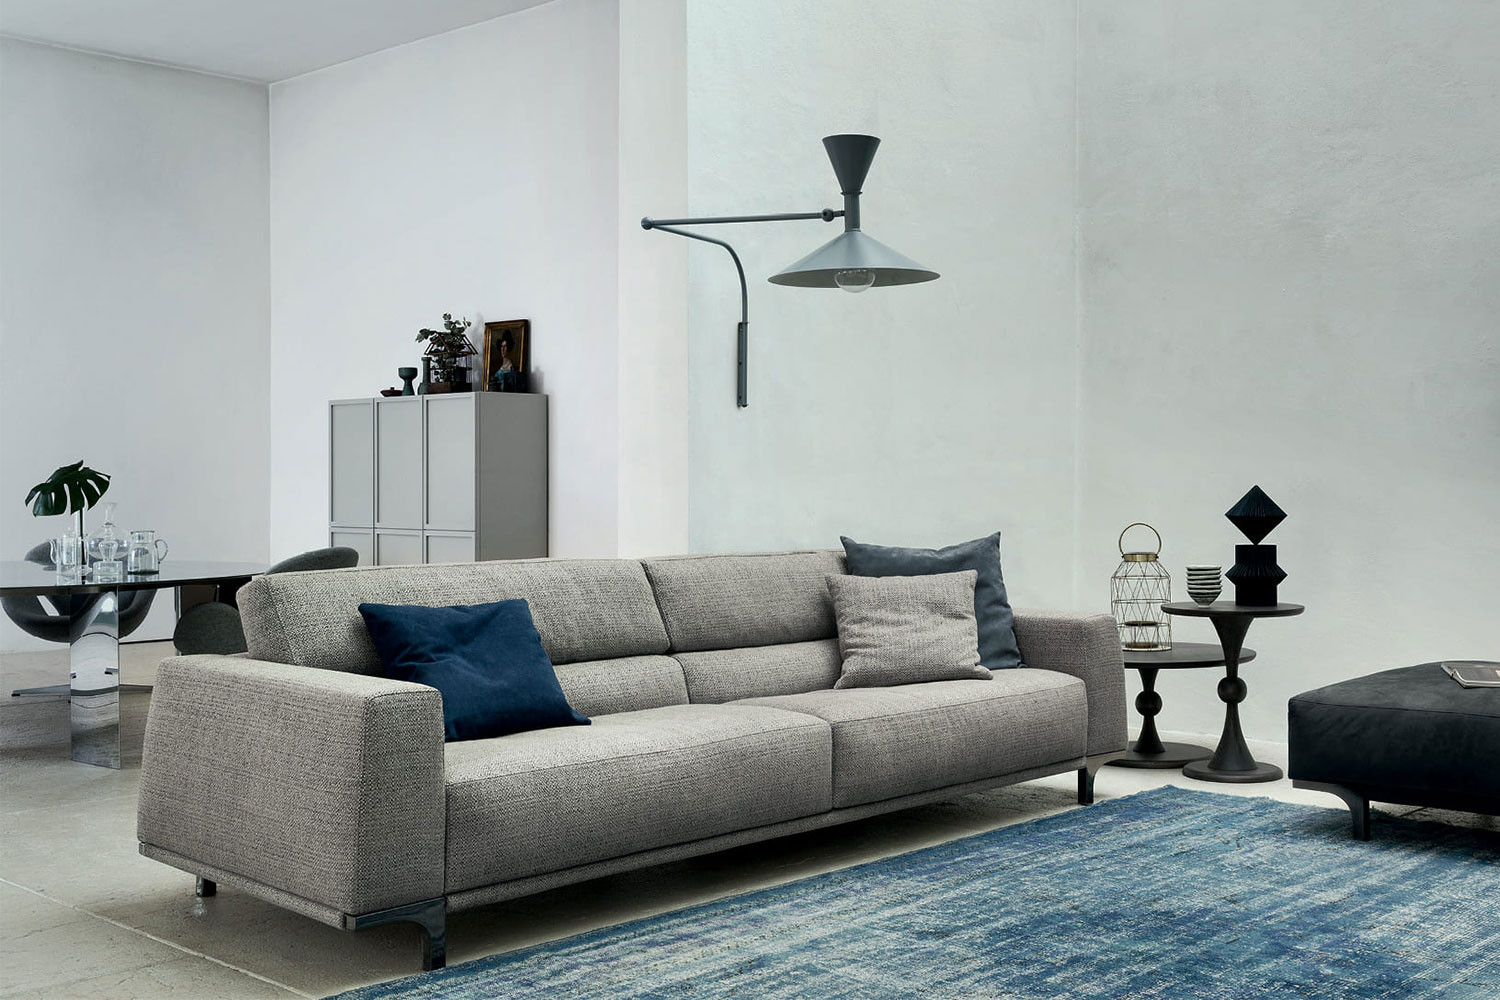 Sofa with ergonomic low back, wooden or metal legs, available in fabric, leather, velvet